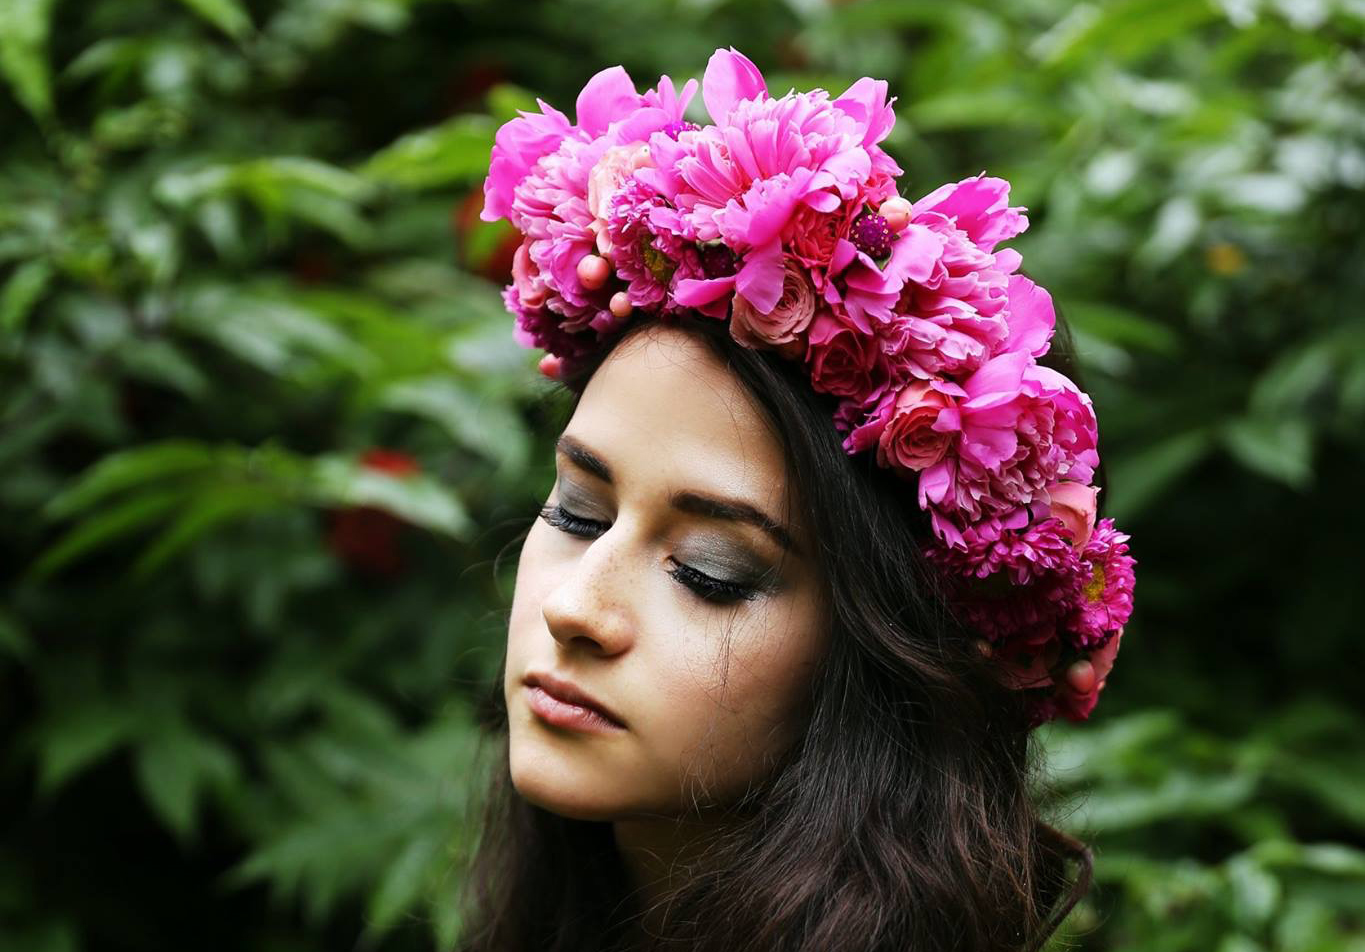 Specialty flower crown made with Alaska-grown peonies | designed by Natasha Price of Paper Peony